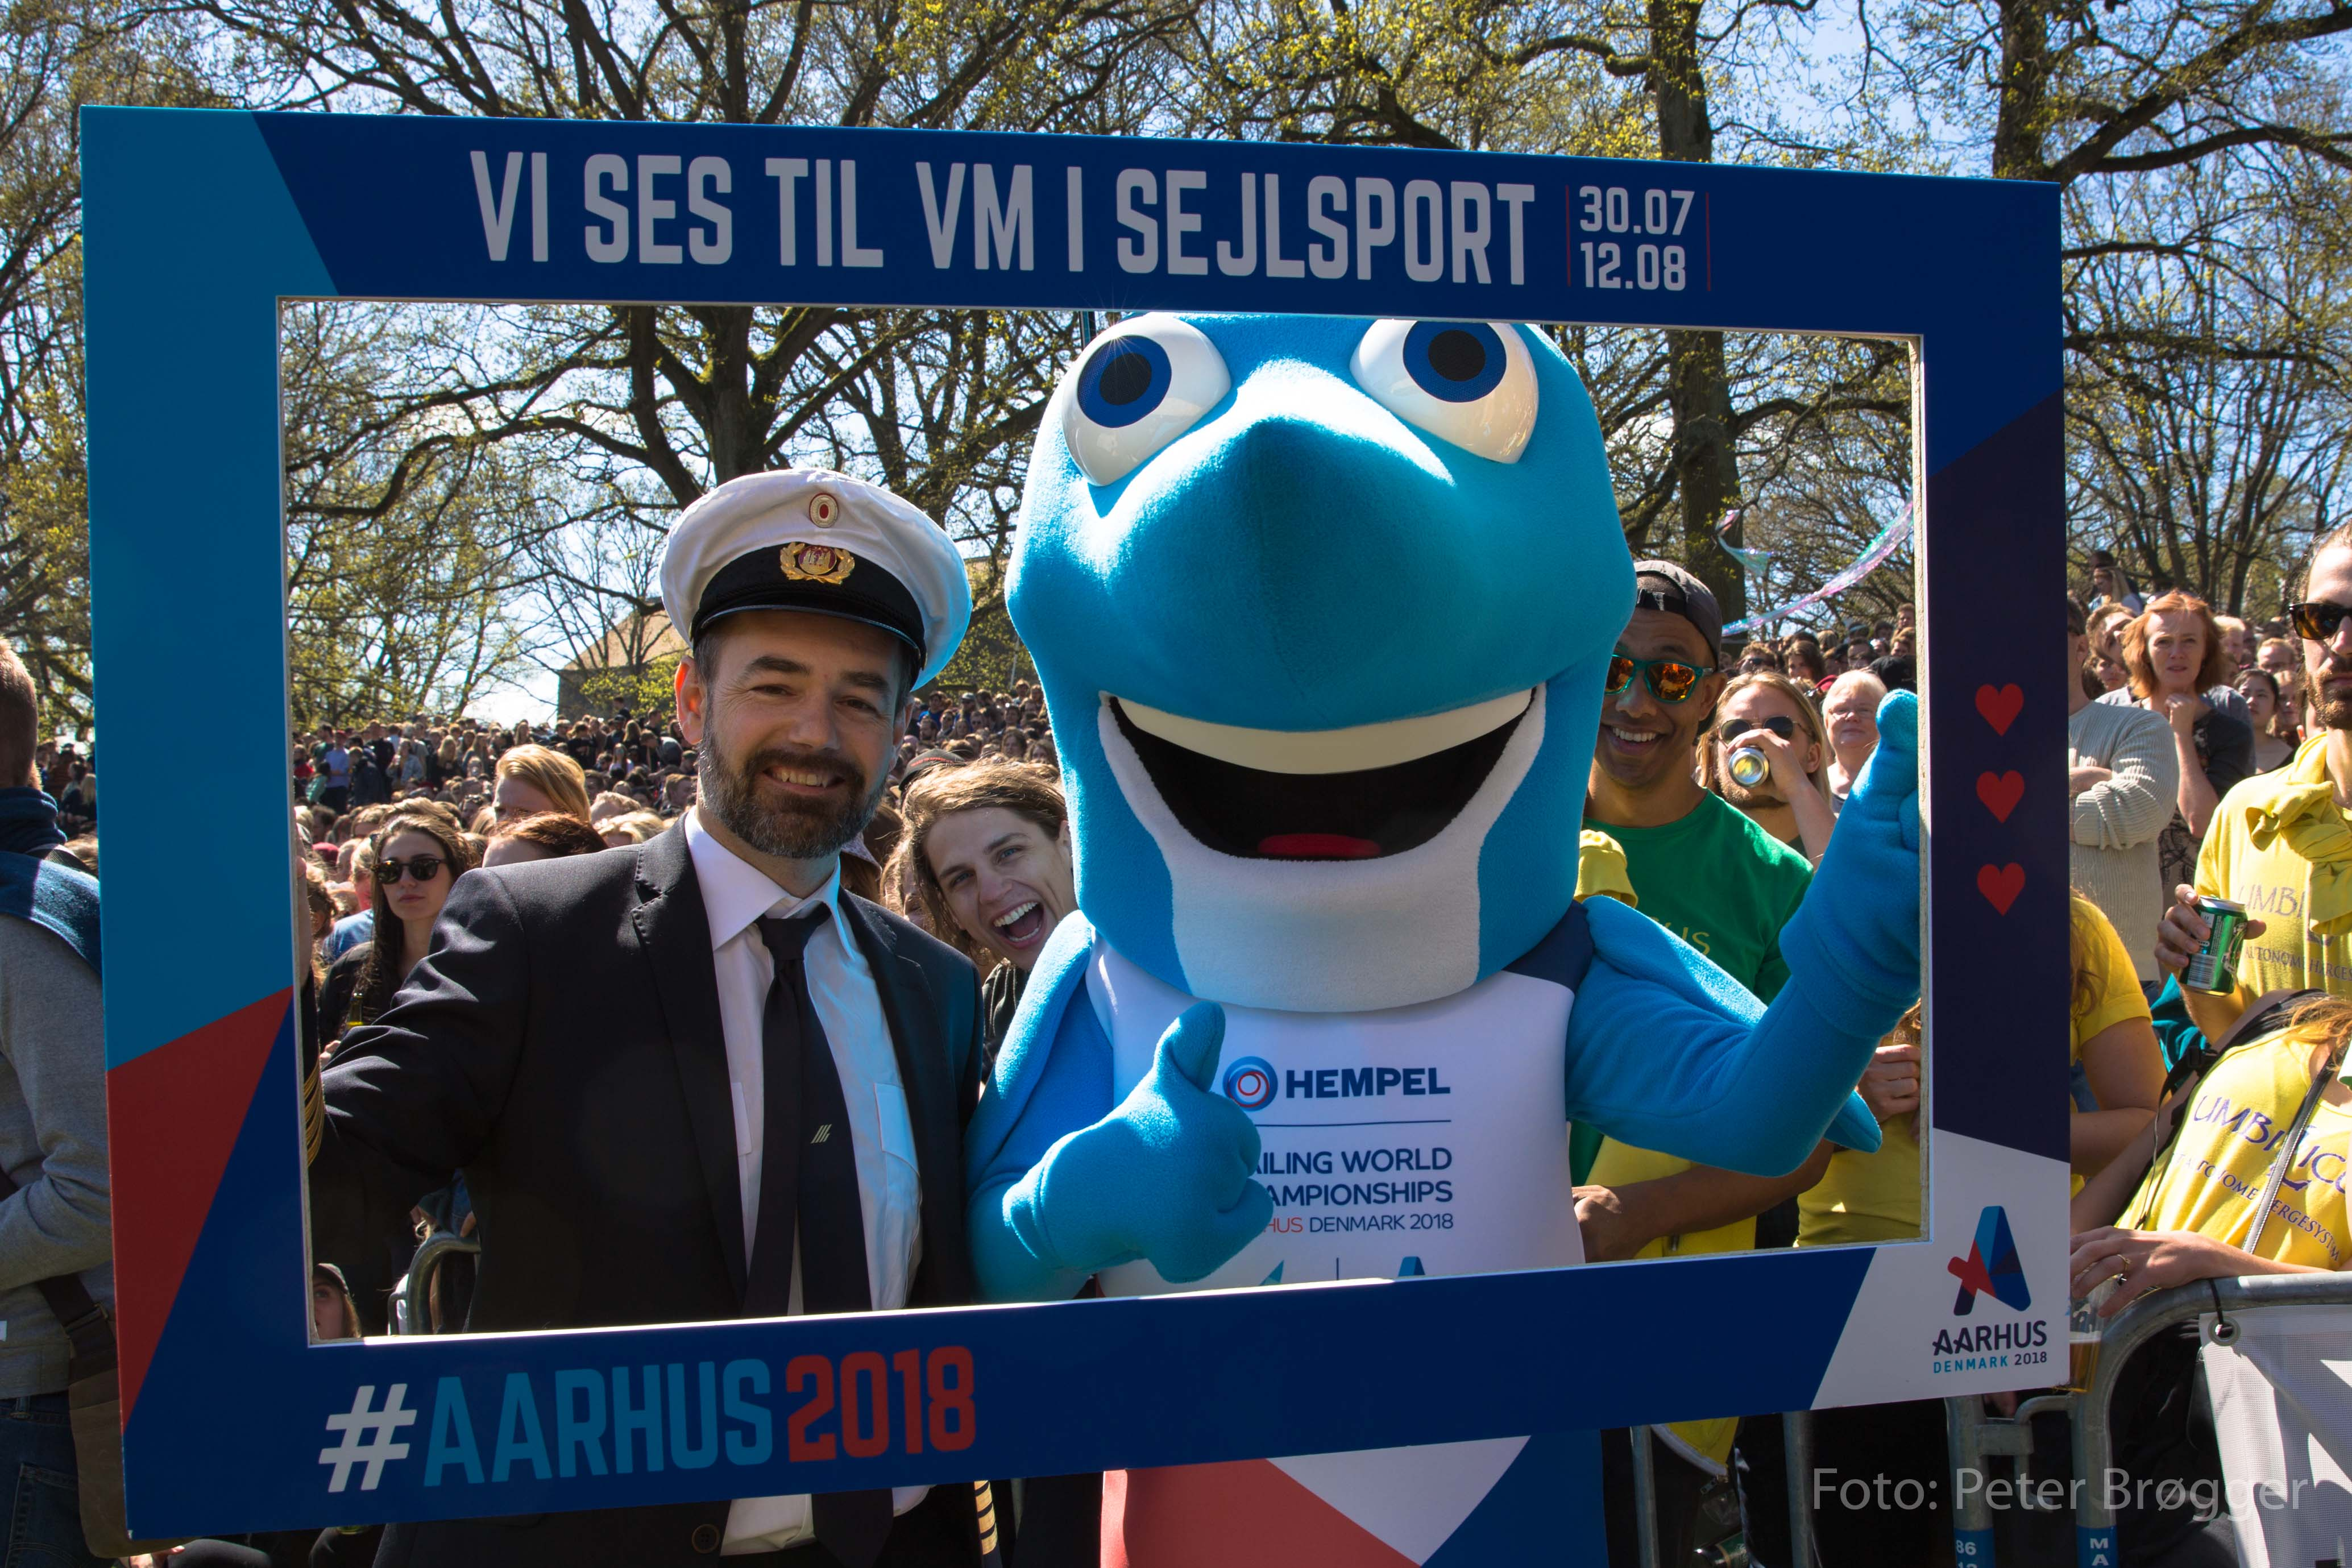 Sejlfiksen, mascot and eye-catcher at WC in sailing 2018